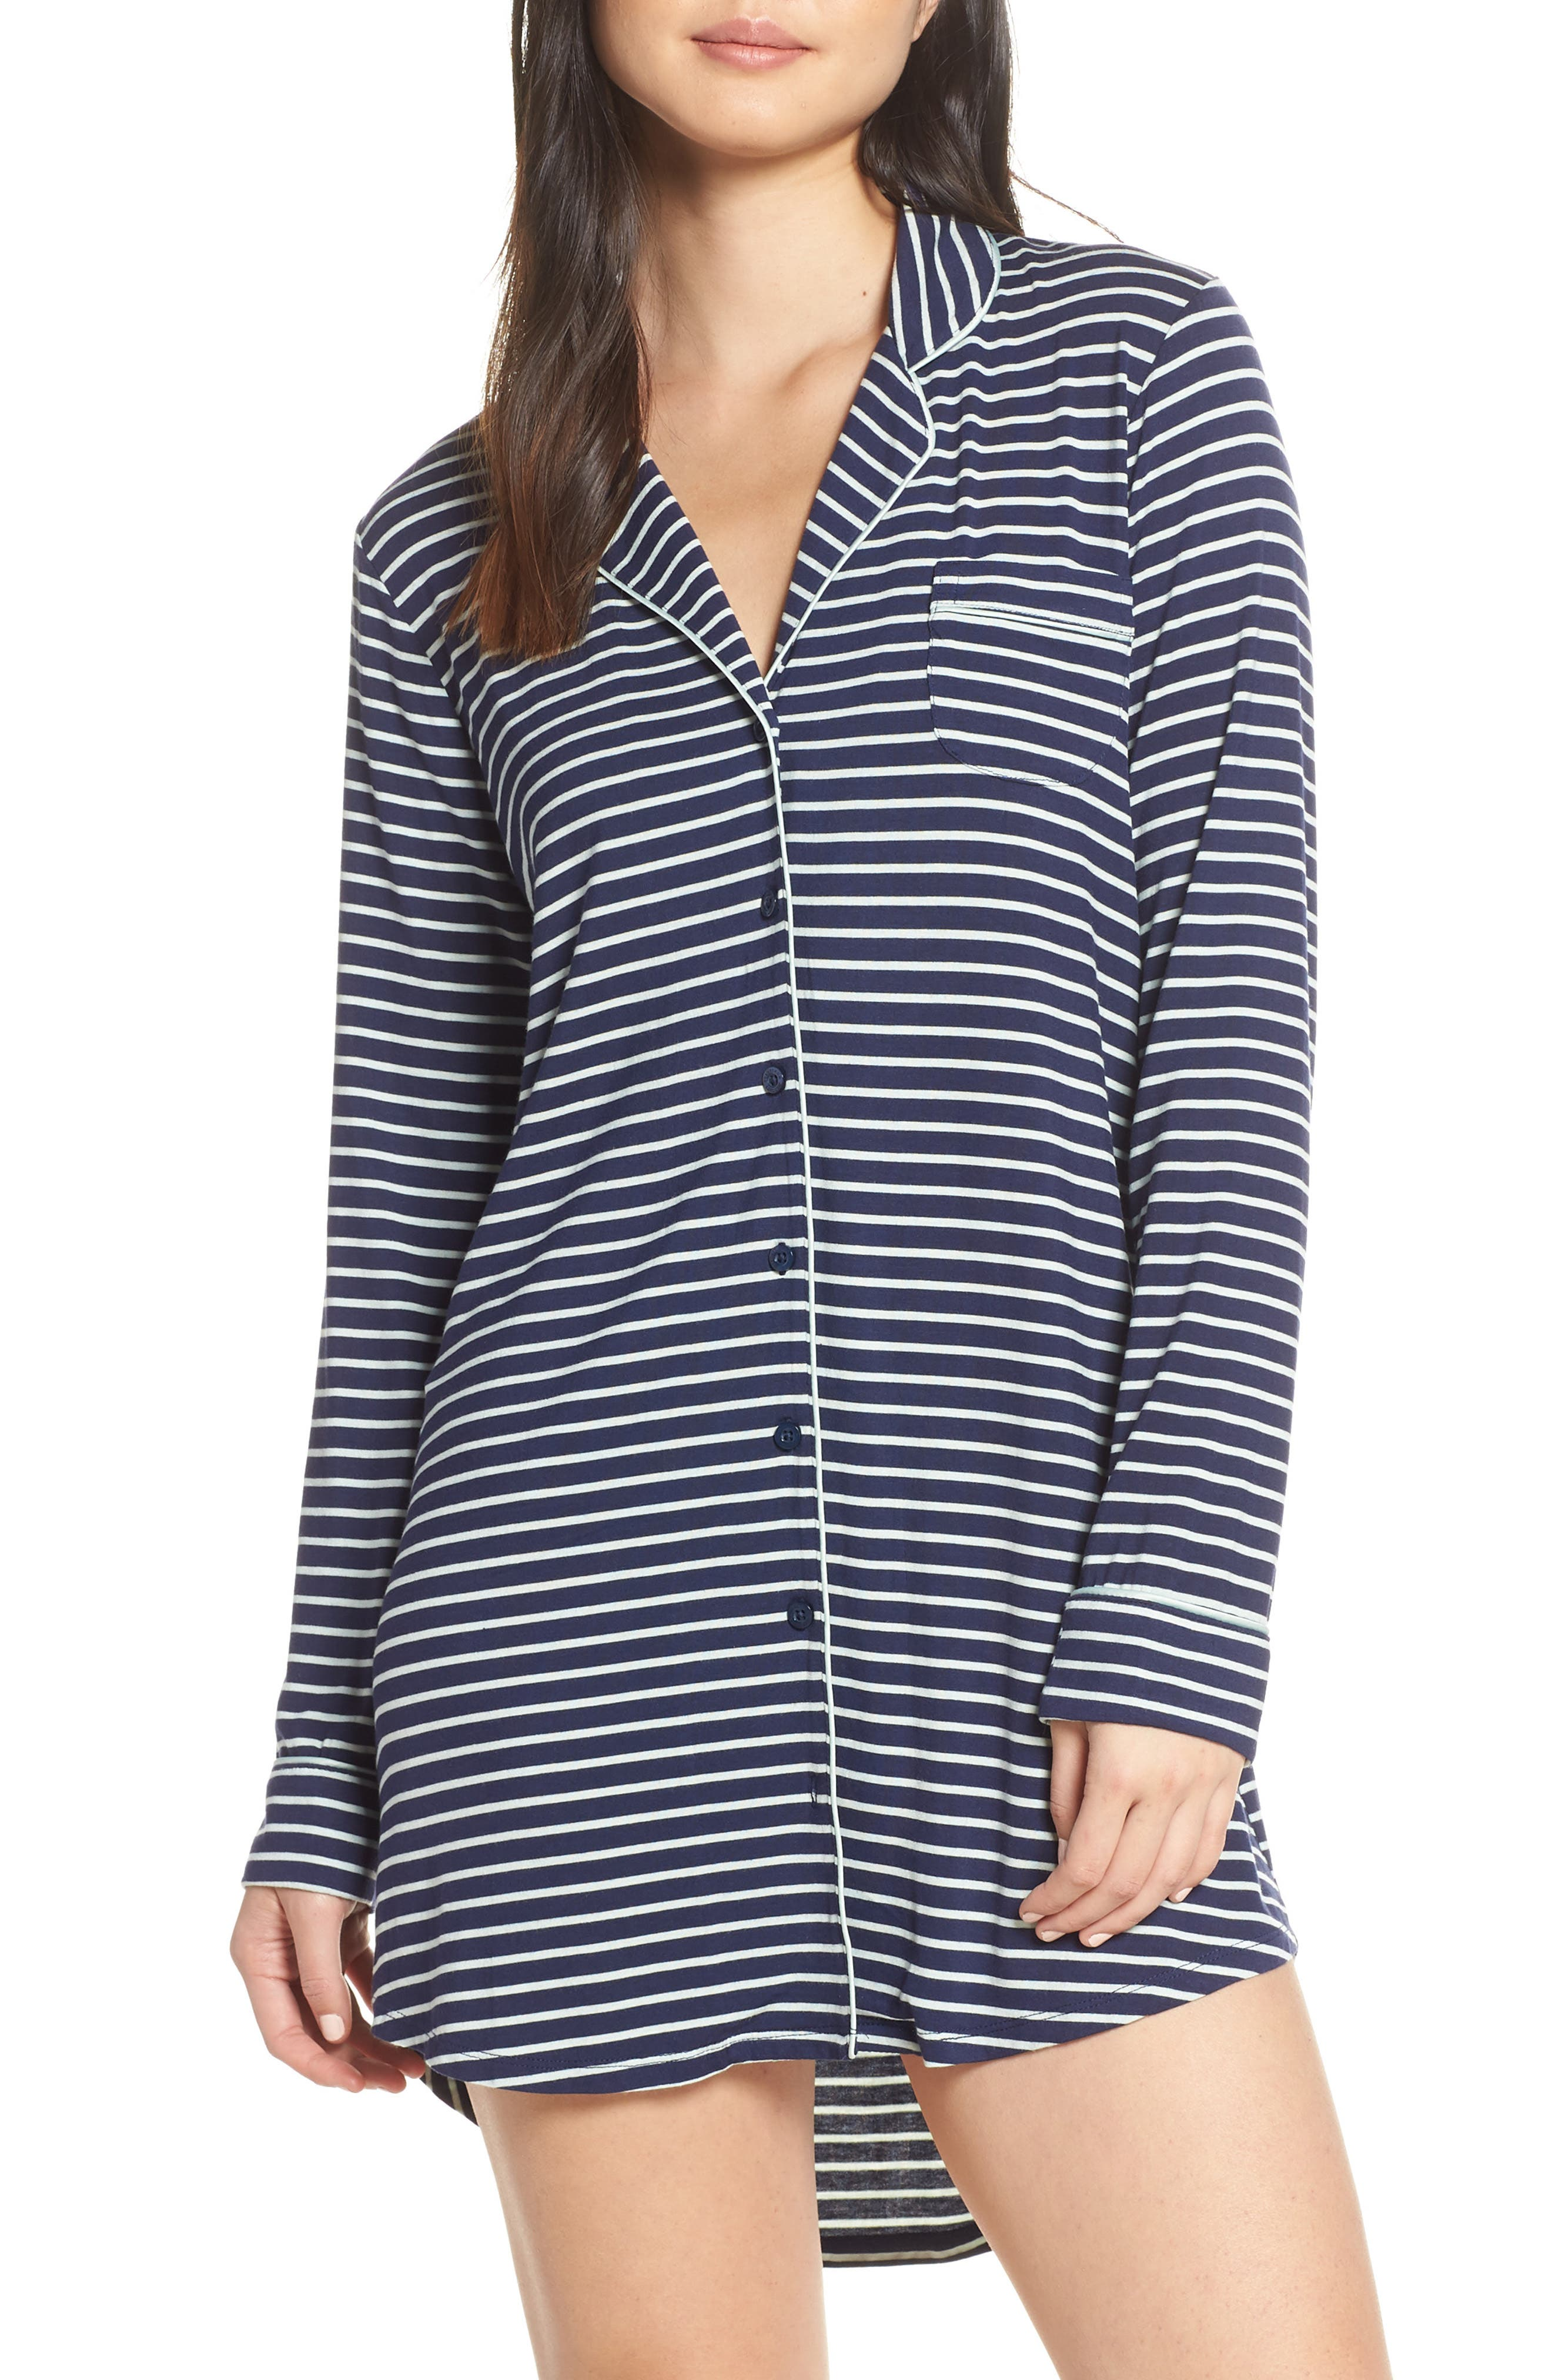 Moonlight Nightshirt,                             Main thumbnail 1, color,                             NAVY PEACOAT LOVELY STRIPE